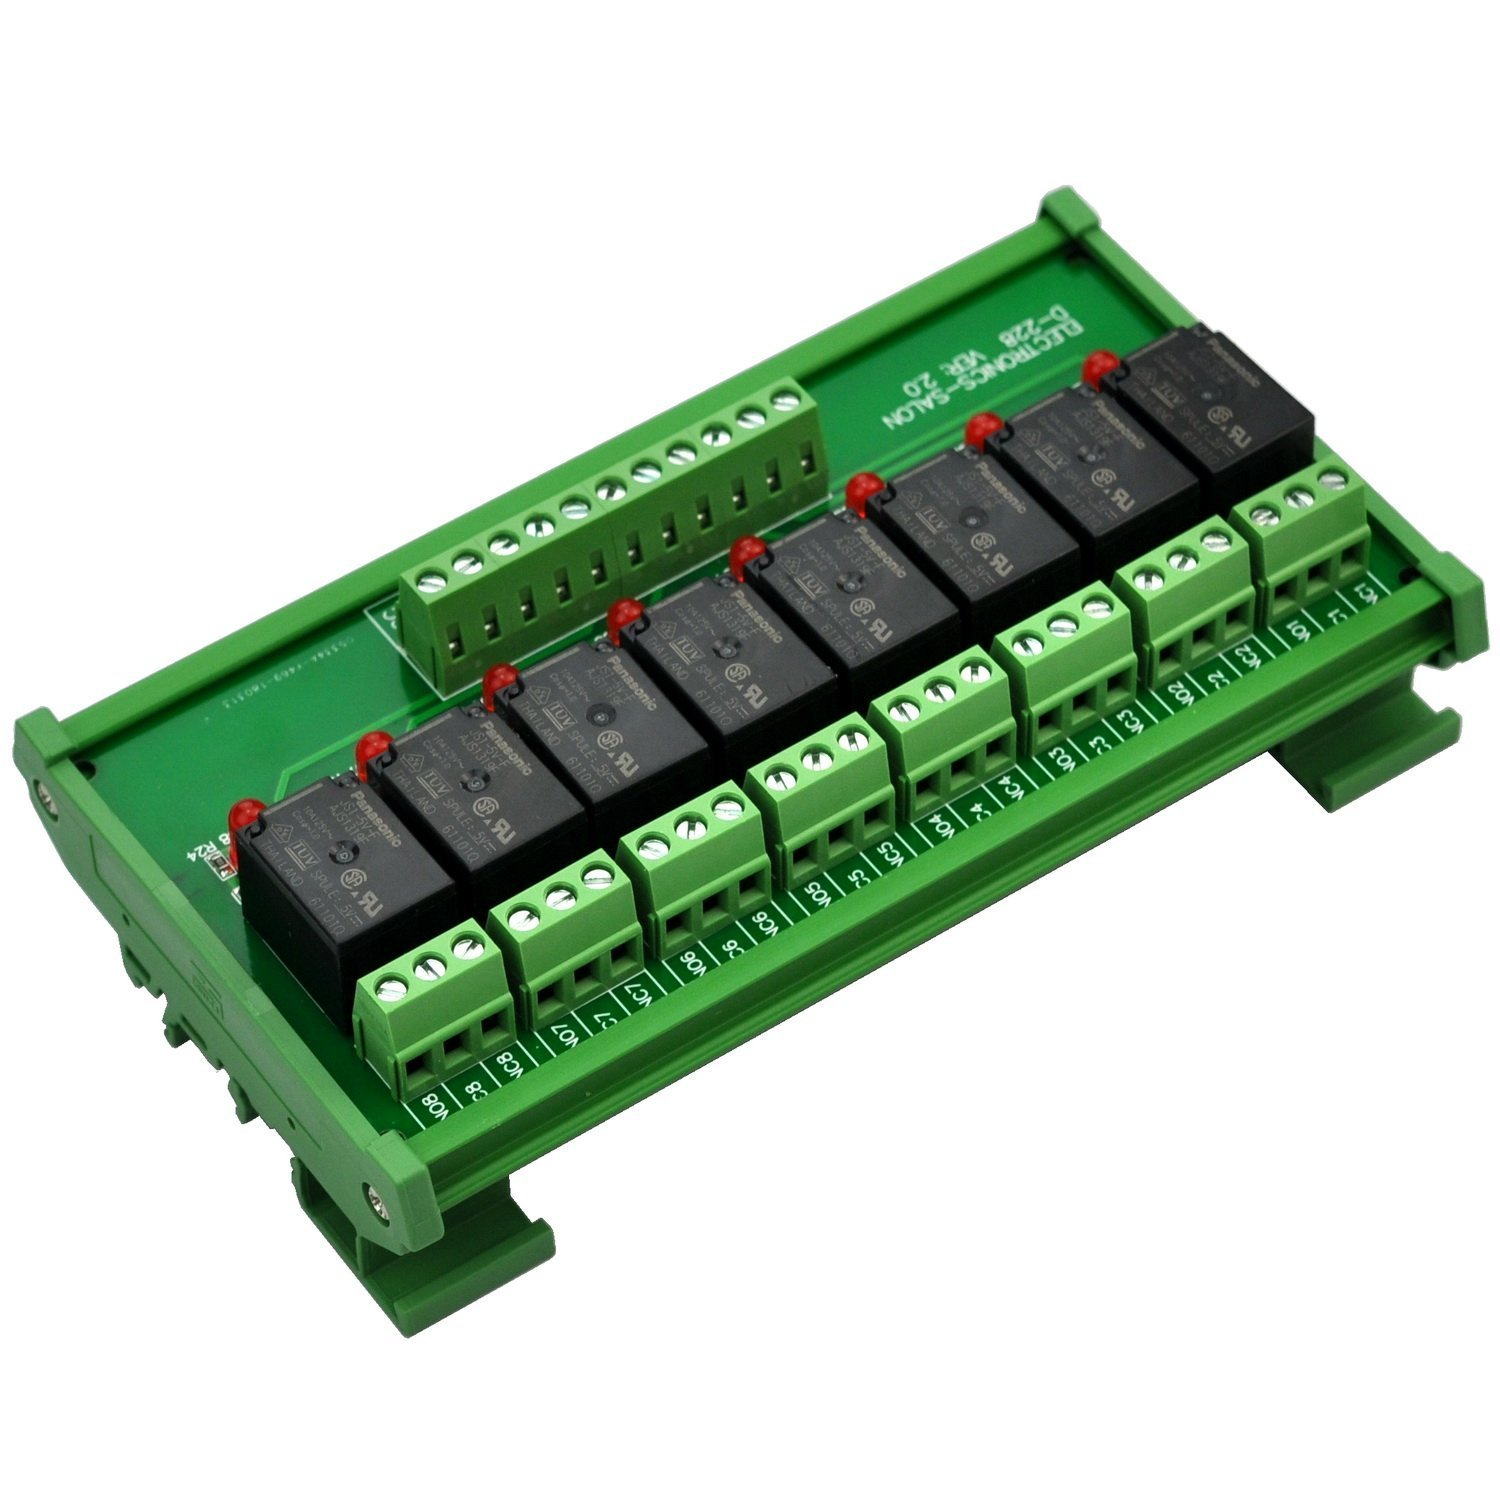 ELECTRONICS-SALON DIN Rail Mount 8 SPDT Power Relay Interface Module, 10A Relay, 5V Coil.